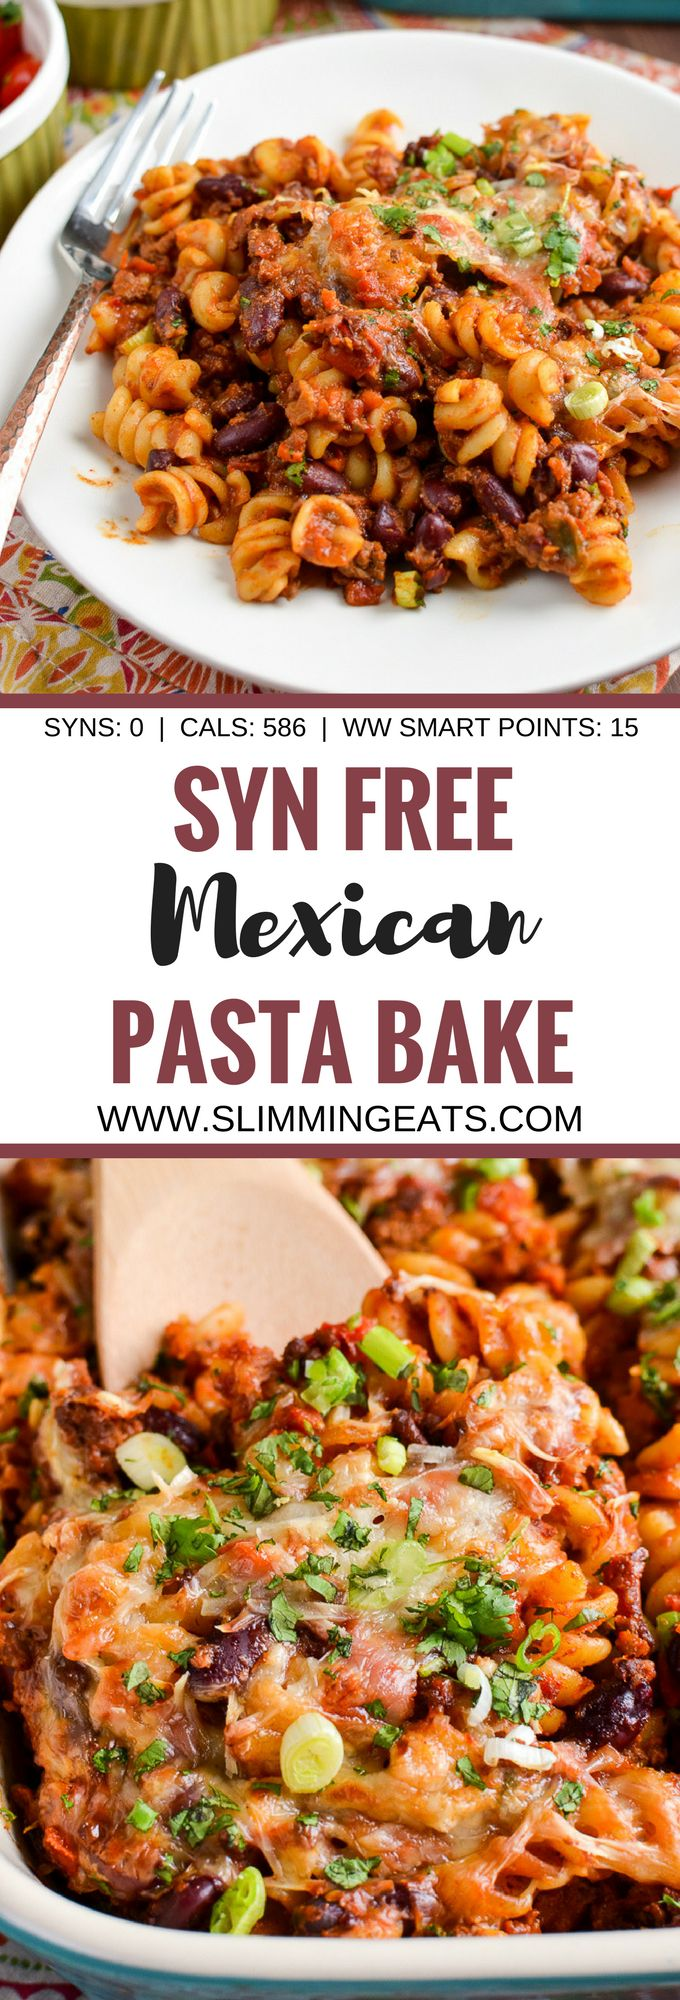 Slimming Eats Syn Free Mexican Pasta Bake - gluten free, vegetarian, Slimming World and Weight Watcher friendly http://www.4myprosperity.com/the-2-week-diet-program/